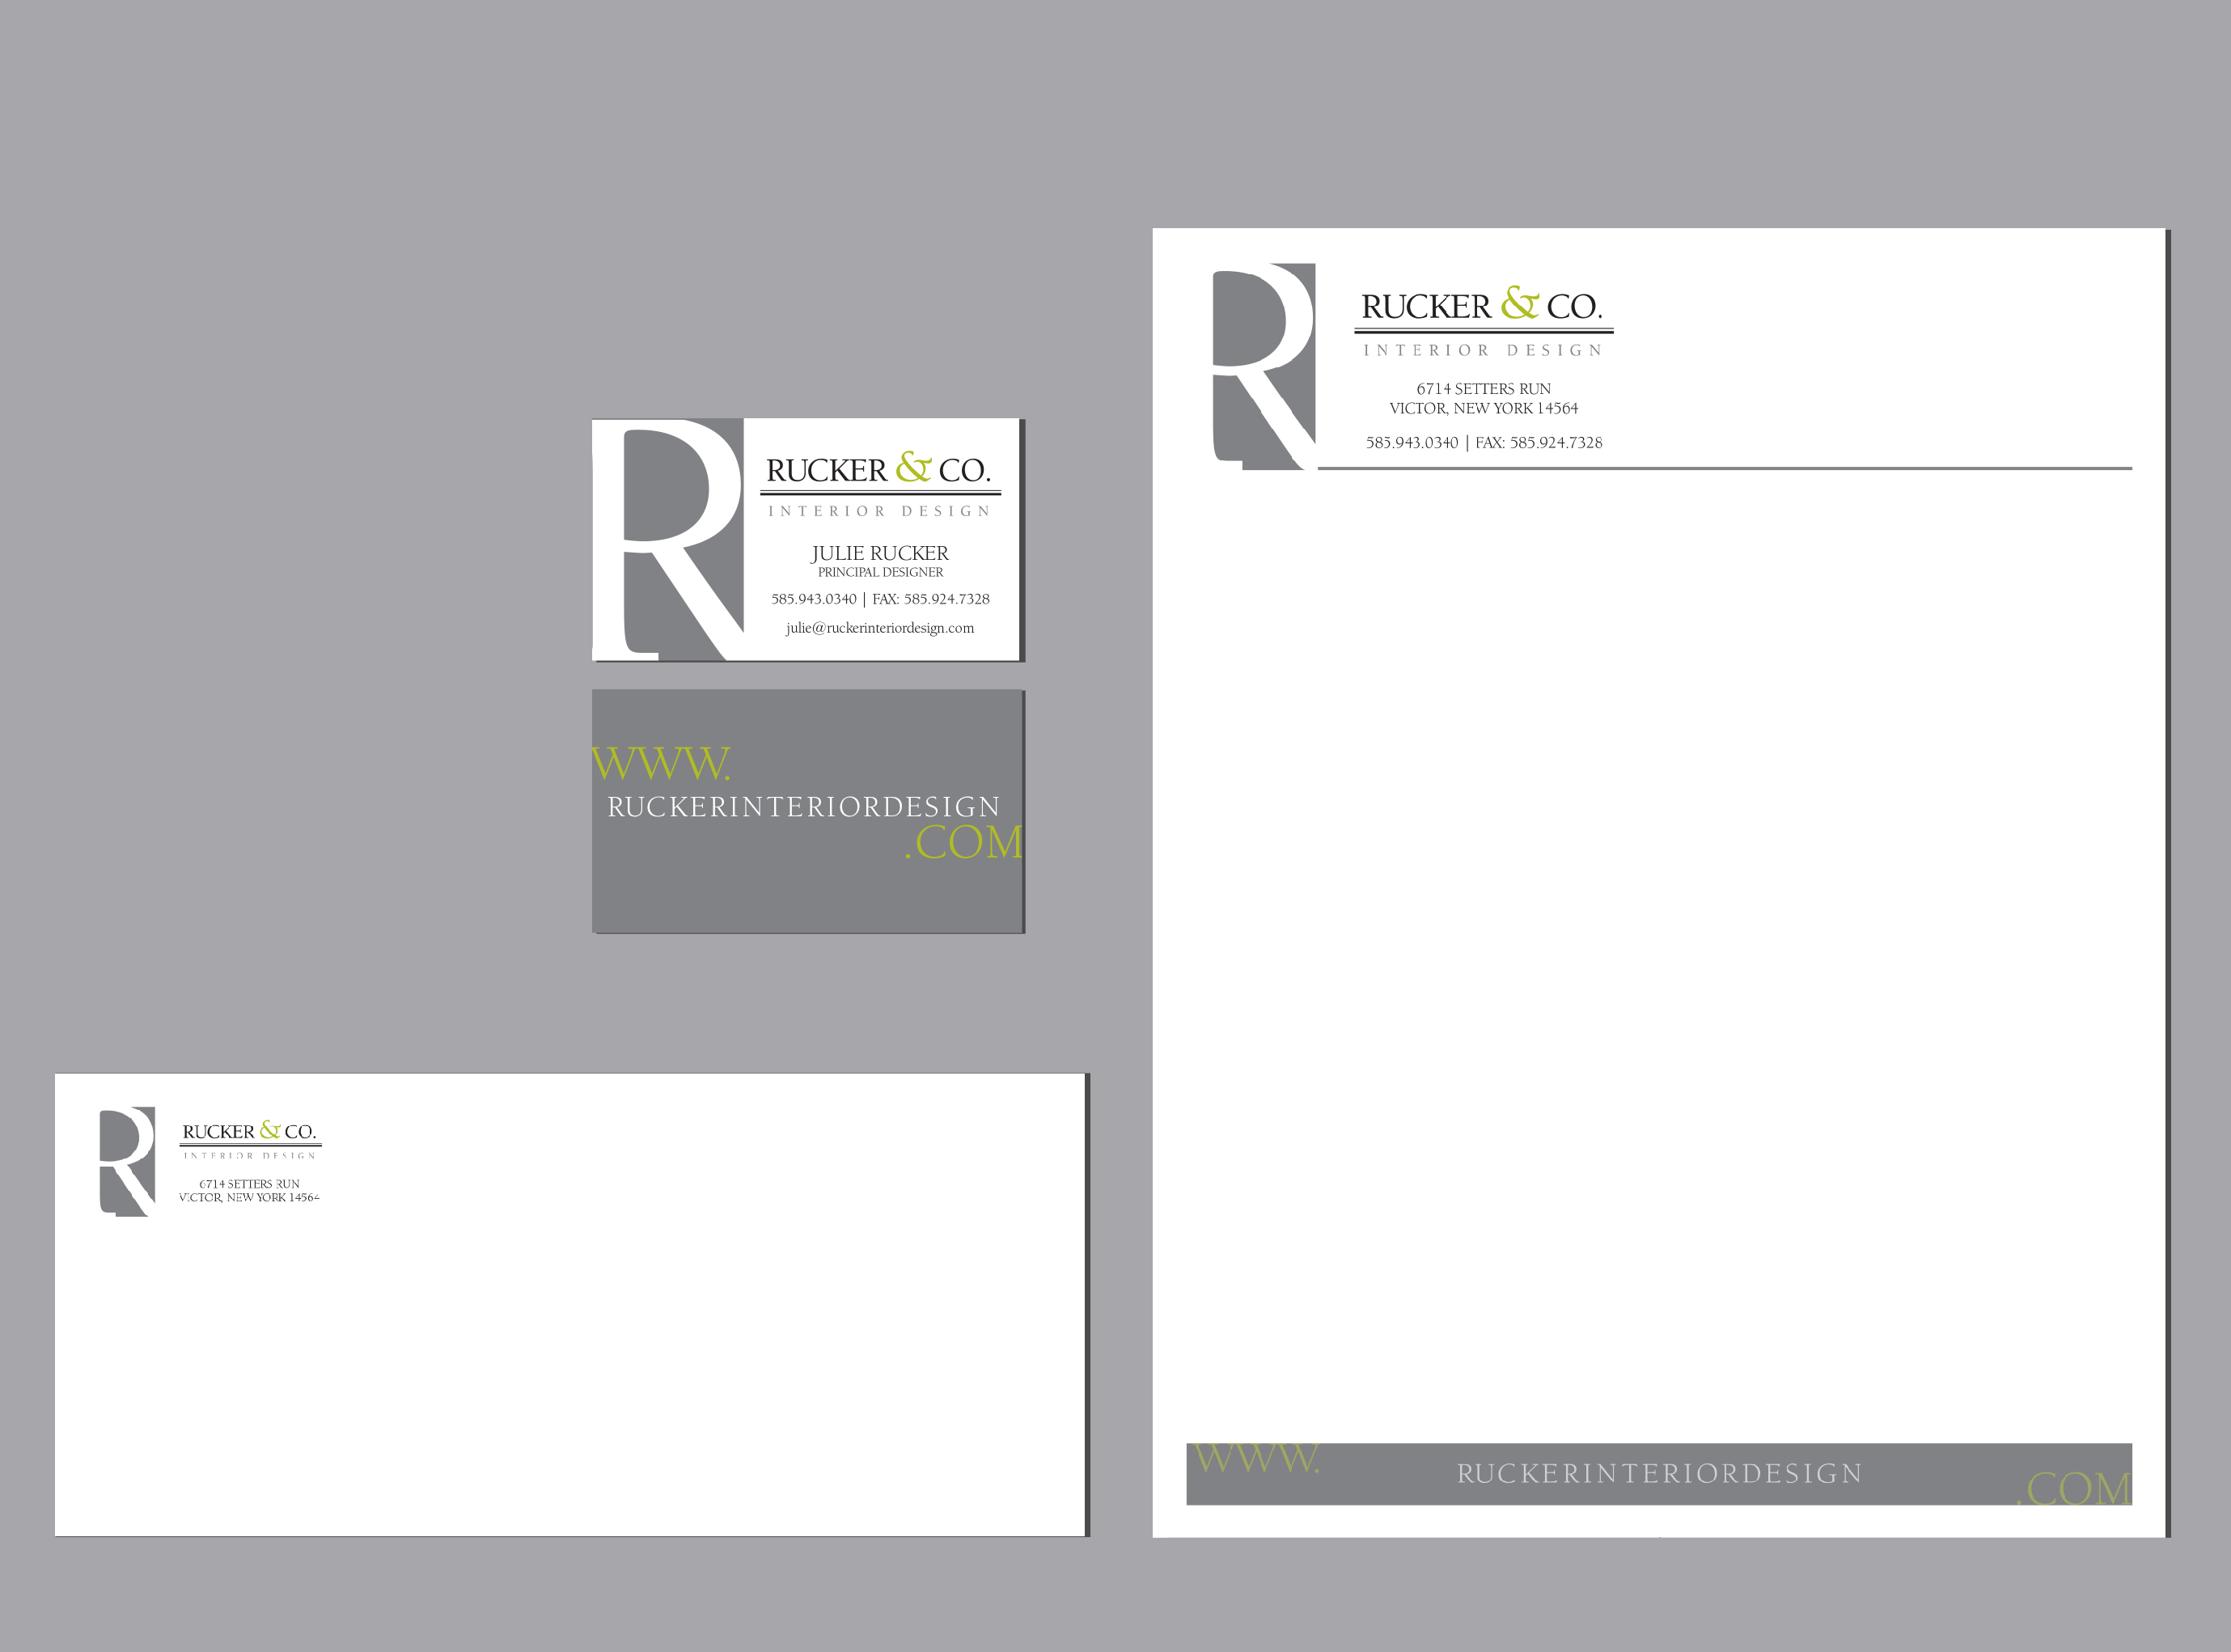 rucker_stationery